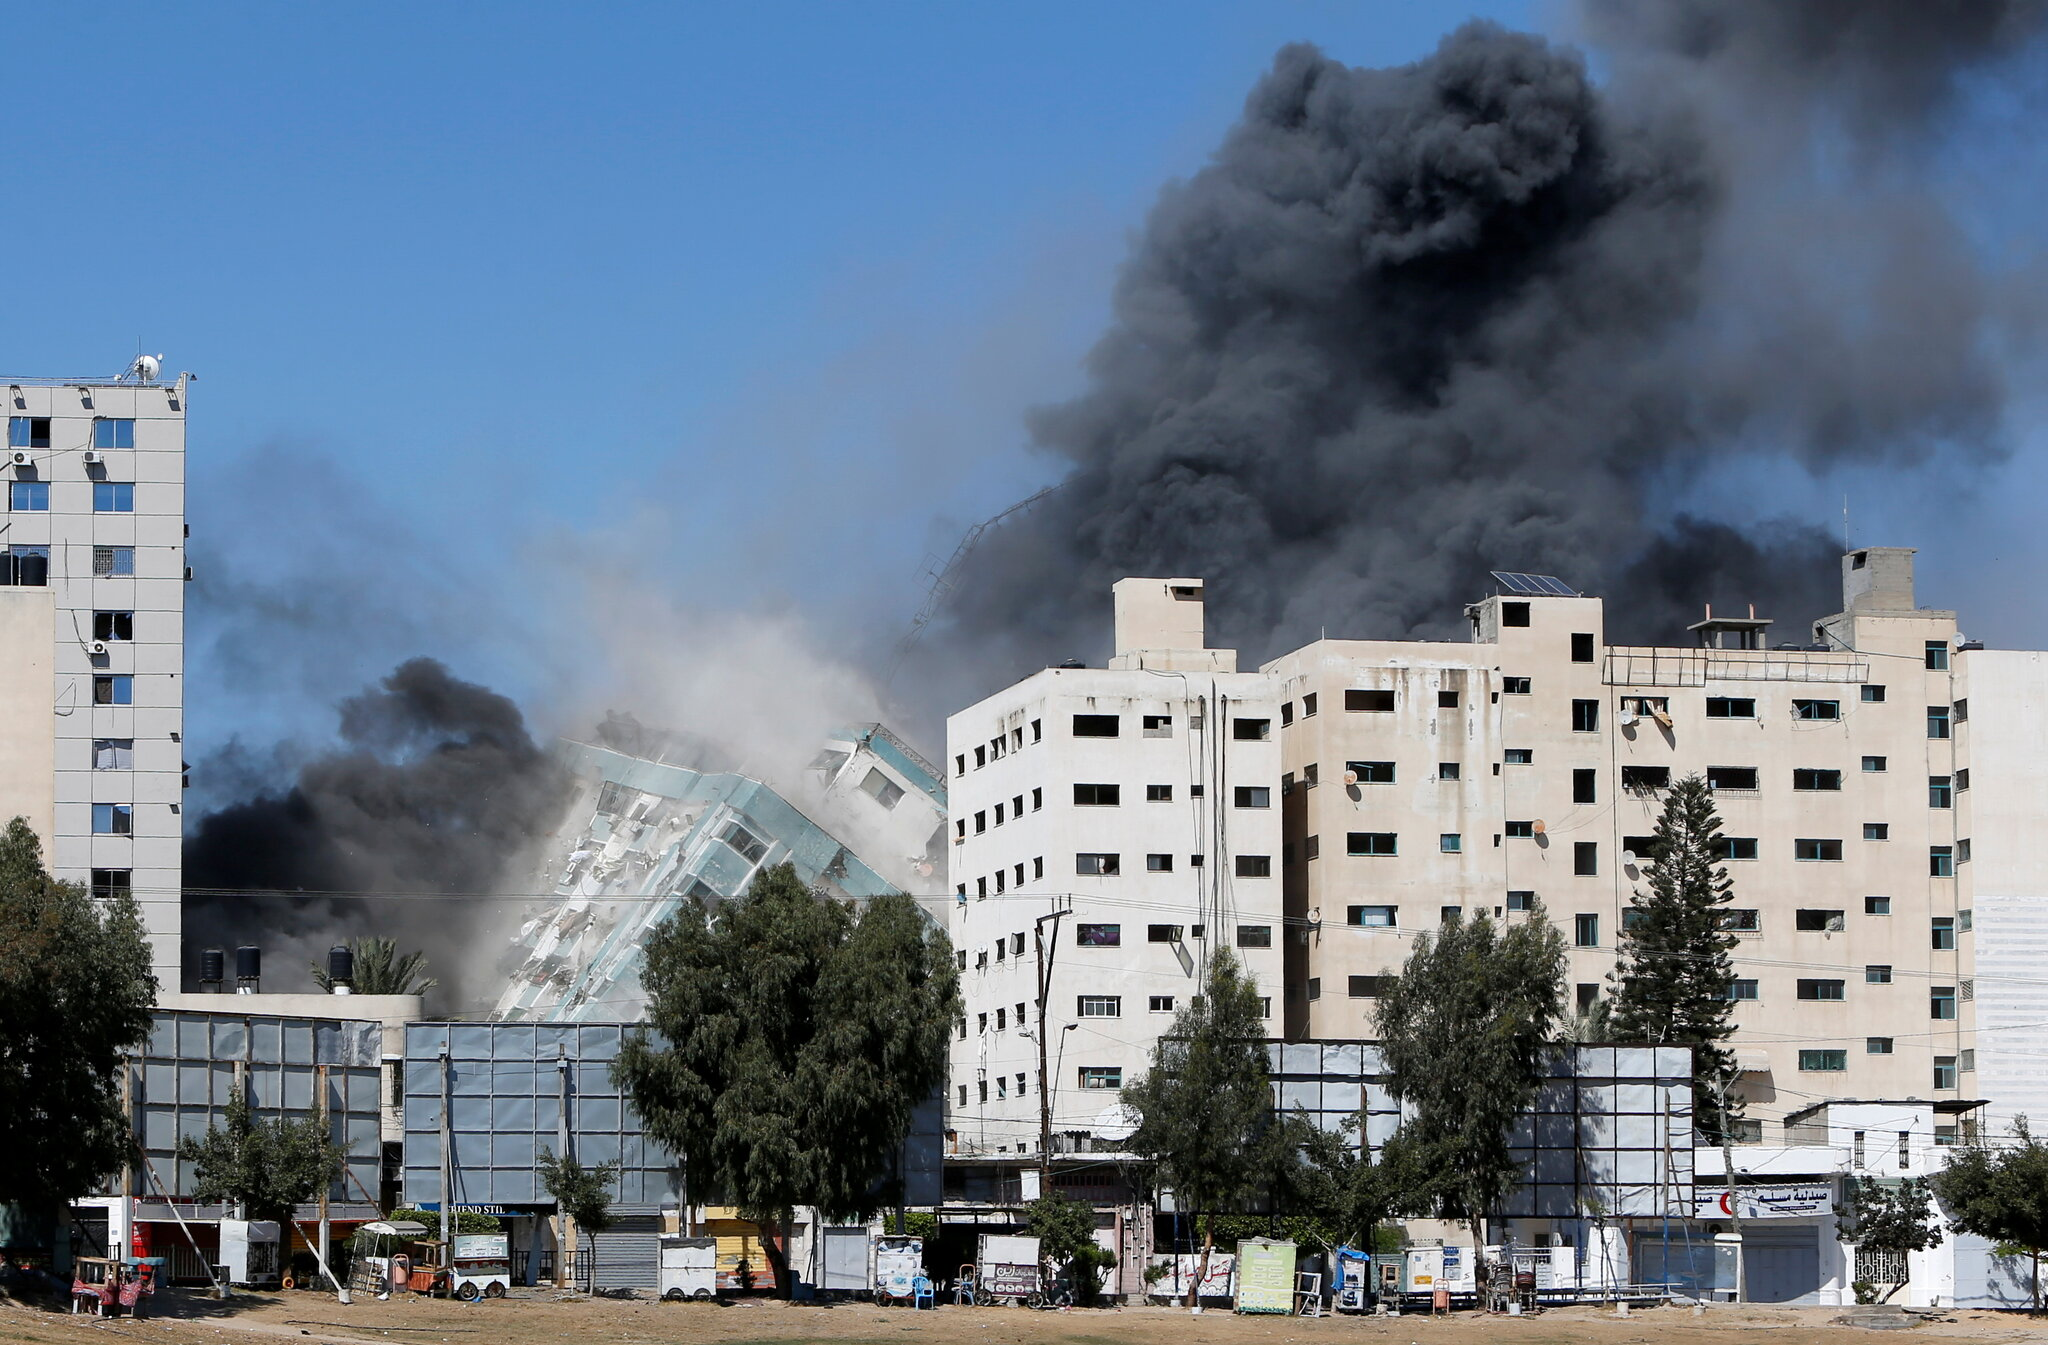 Attack on the AP Building in Gaza (image from @KenRoth on Twitter)